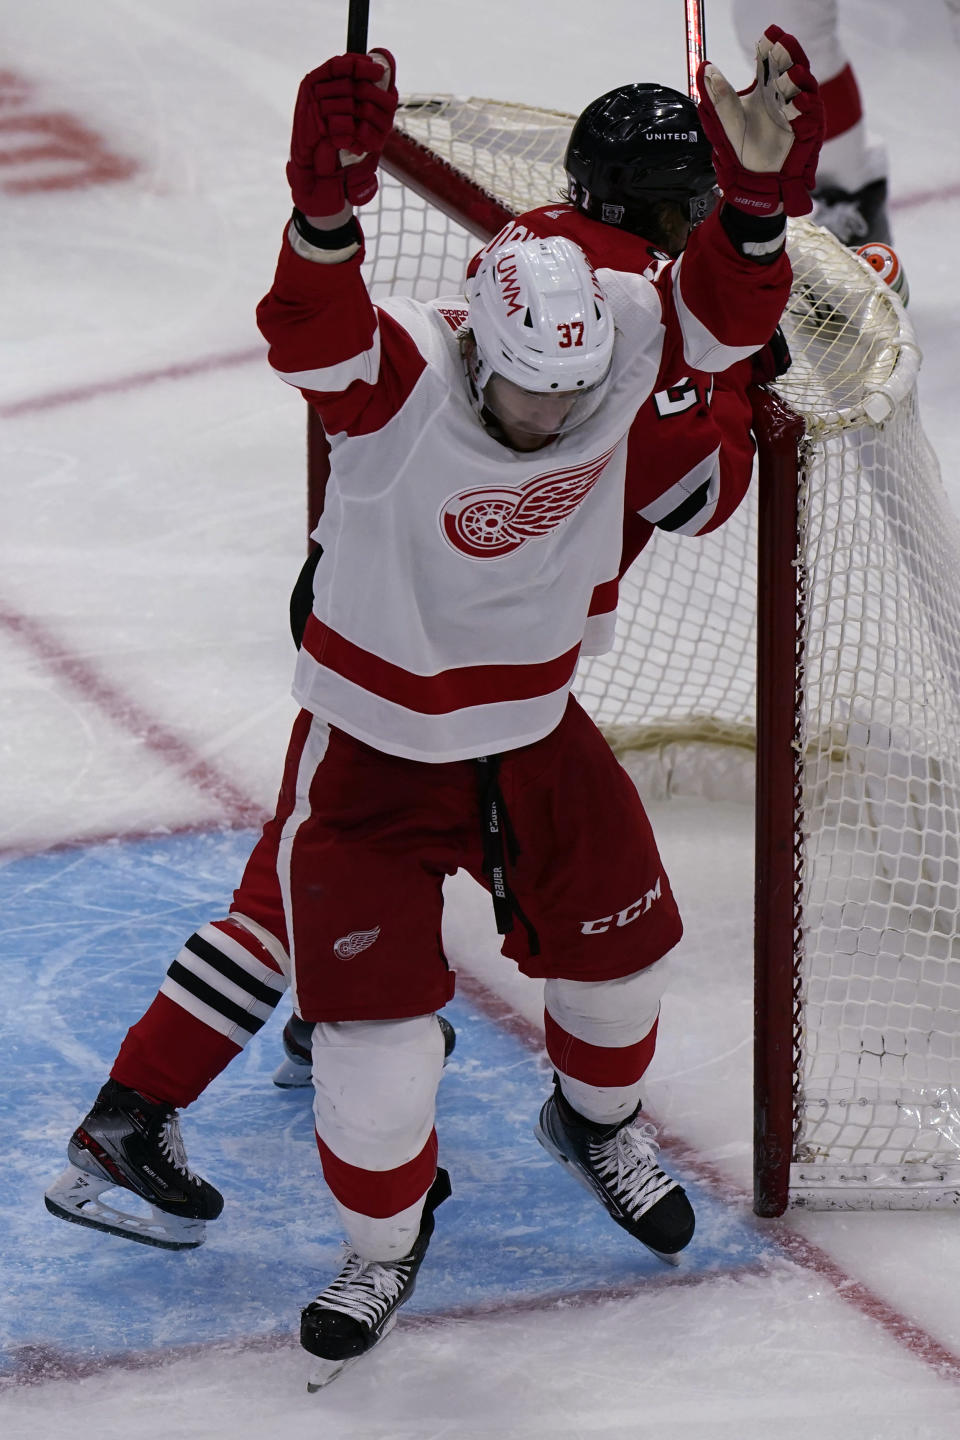 Detroit Red Wings right wing Evgeny Svechnikov celebrates after scoring a goal against the Chicago Blackhawks during the third period of an NHL hockey game in Chicago, Saturday, Feb. 27, 2021. (AP Photo/Nam Y. Huh)